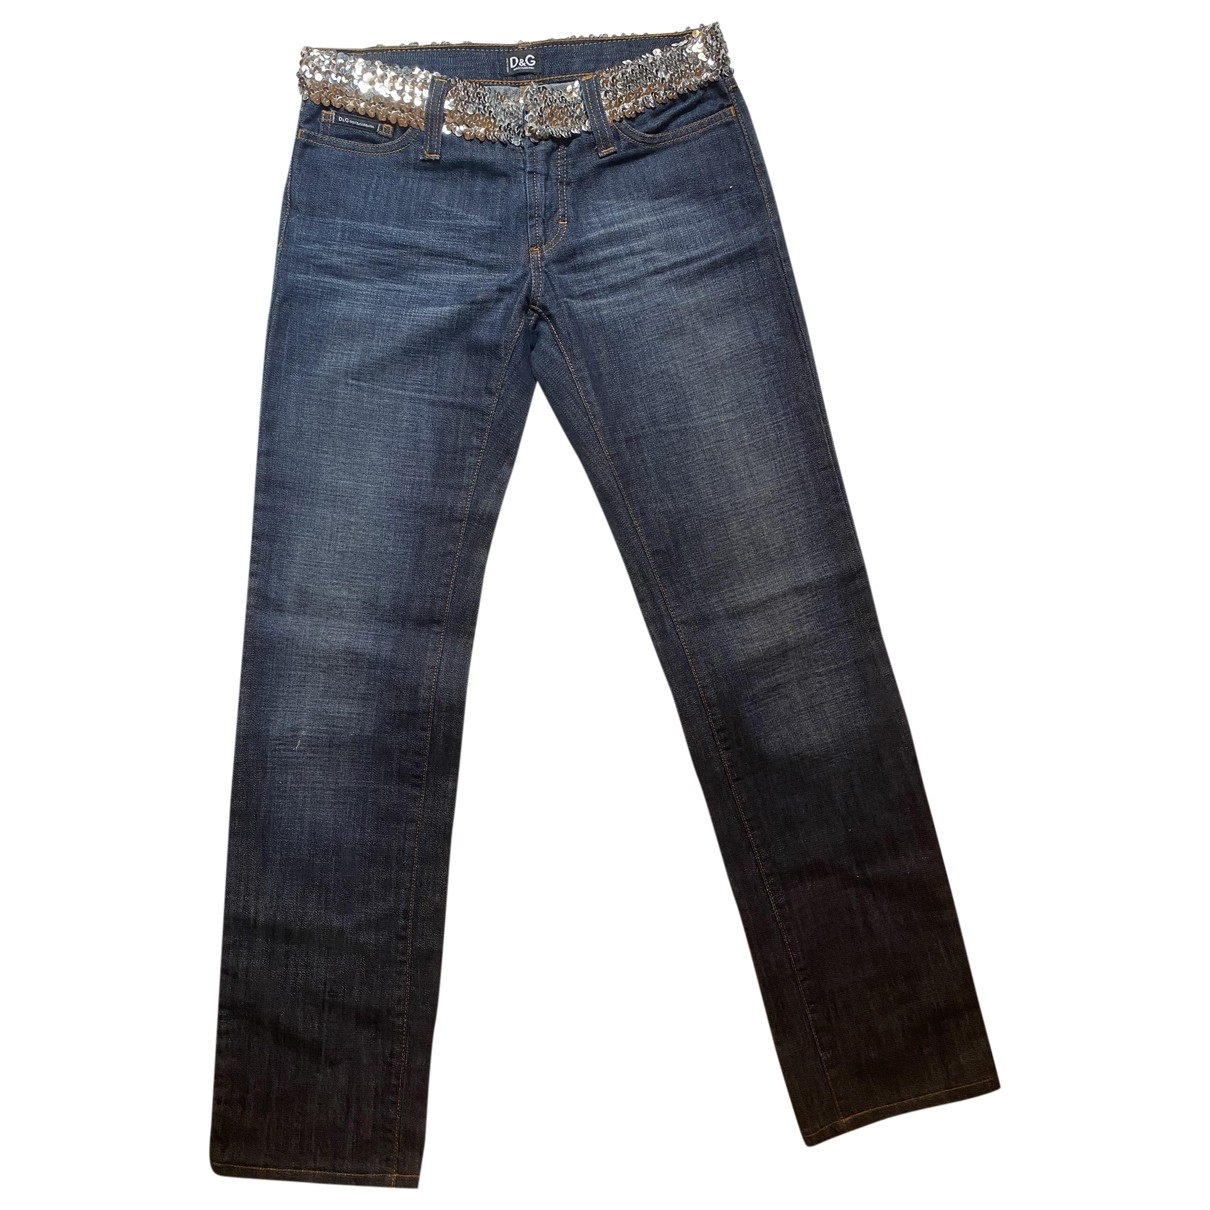 D&g \N Blue Denim - Jeans Jeans for Women 36 FR